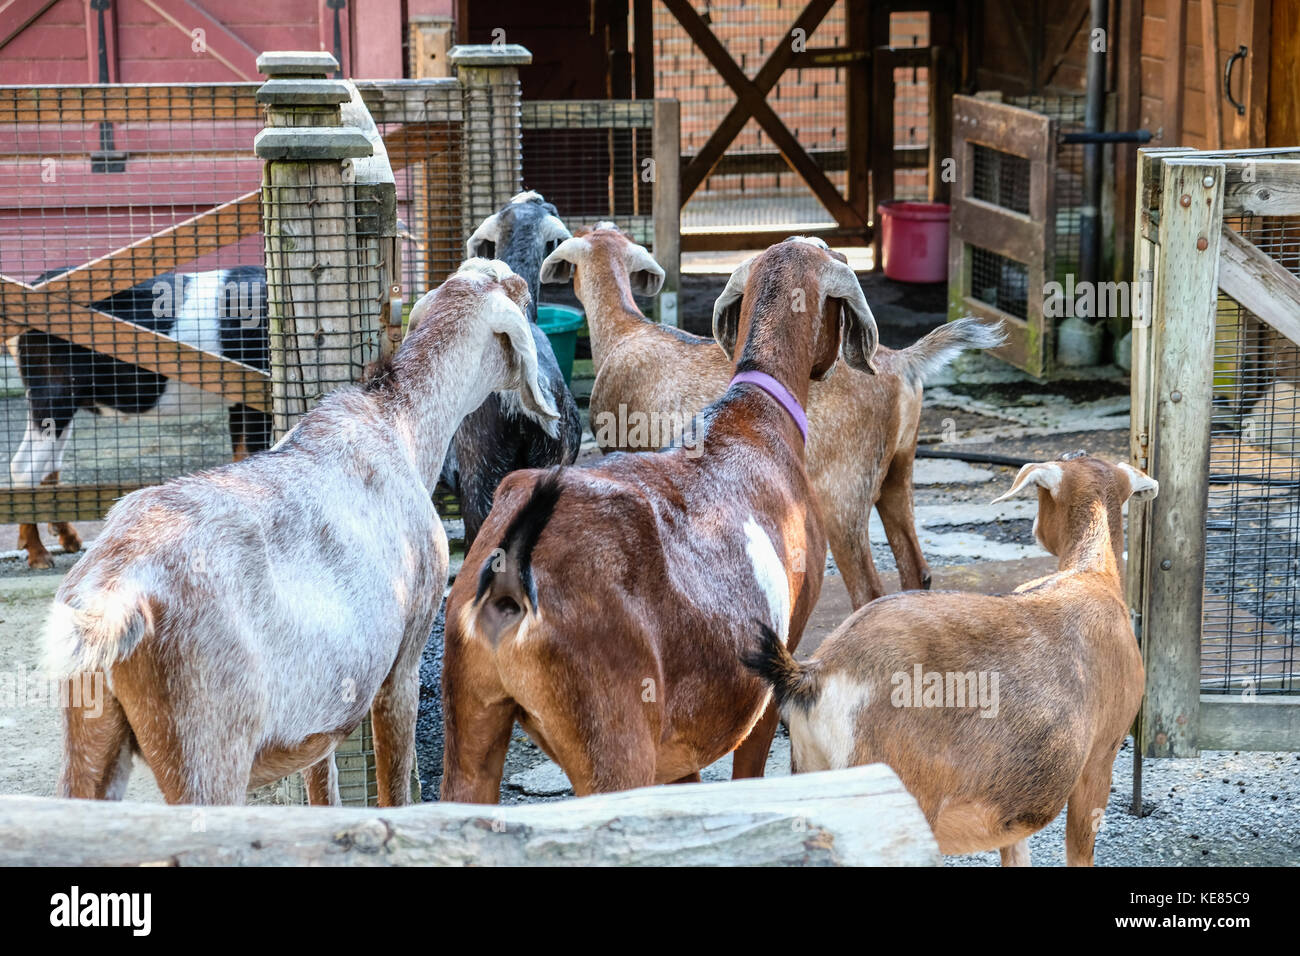 Pygmy goats lining up for foods at Seattle Woodland Park Zoo petting farm - Stock Image